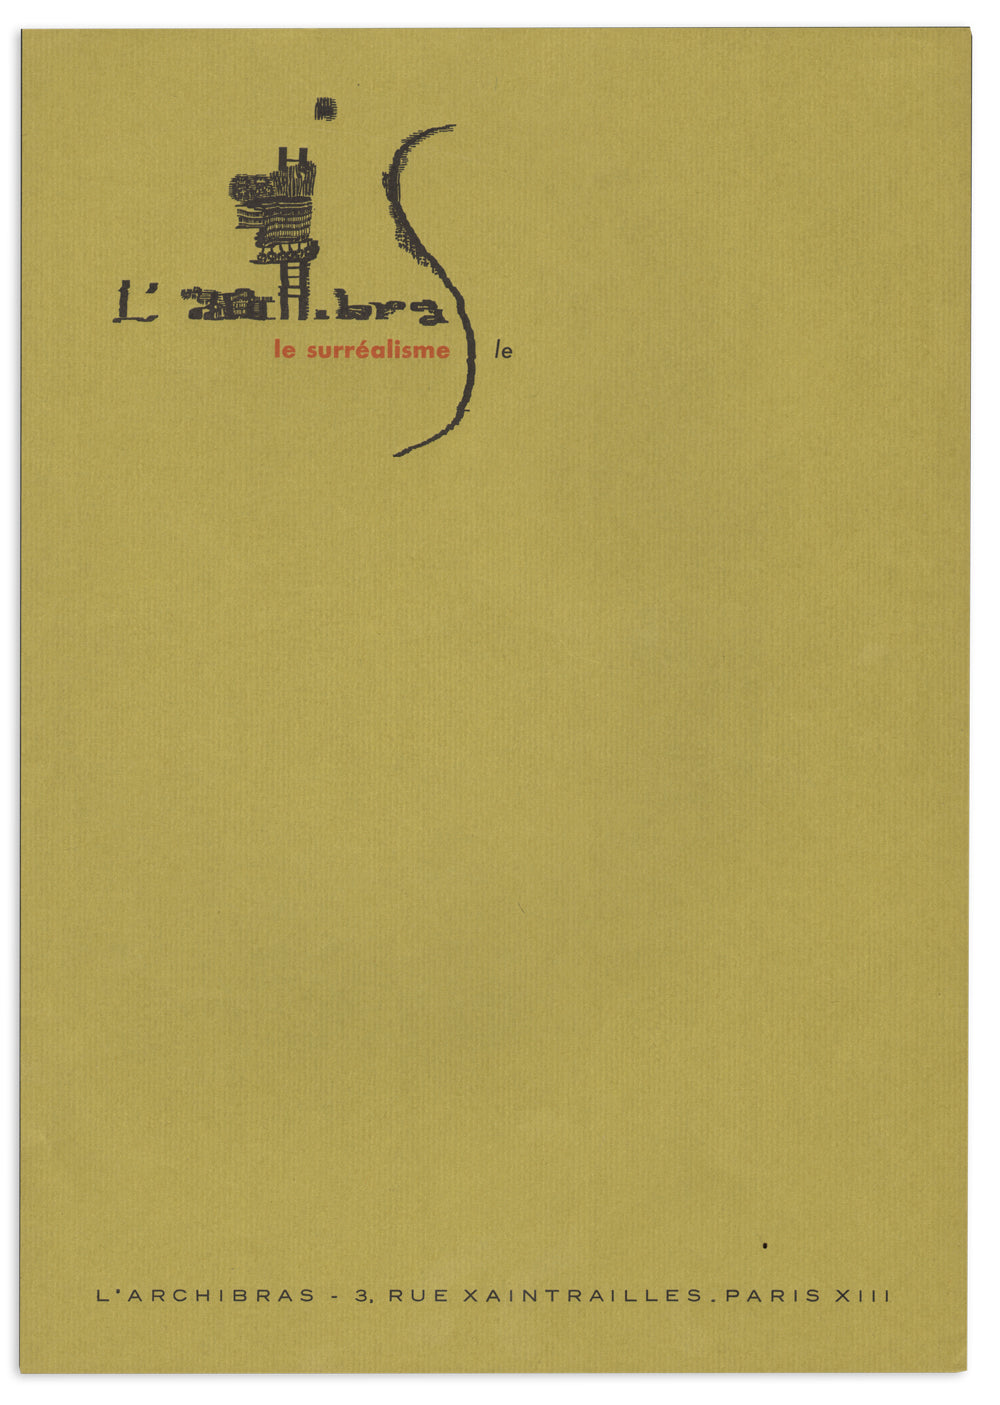 Sheet of Blank Letterhead from L'Archibras, Surrealist Periodical